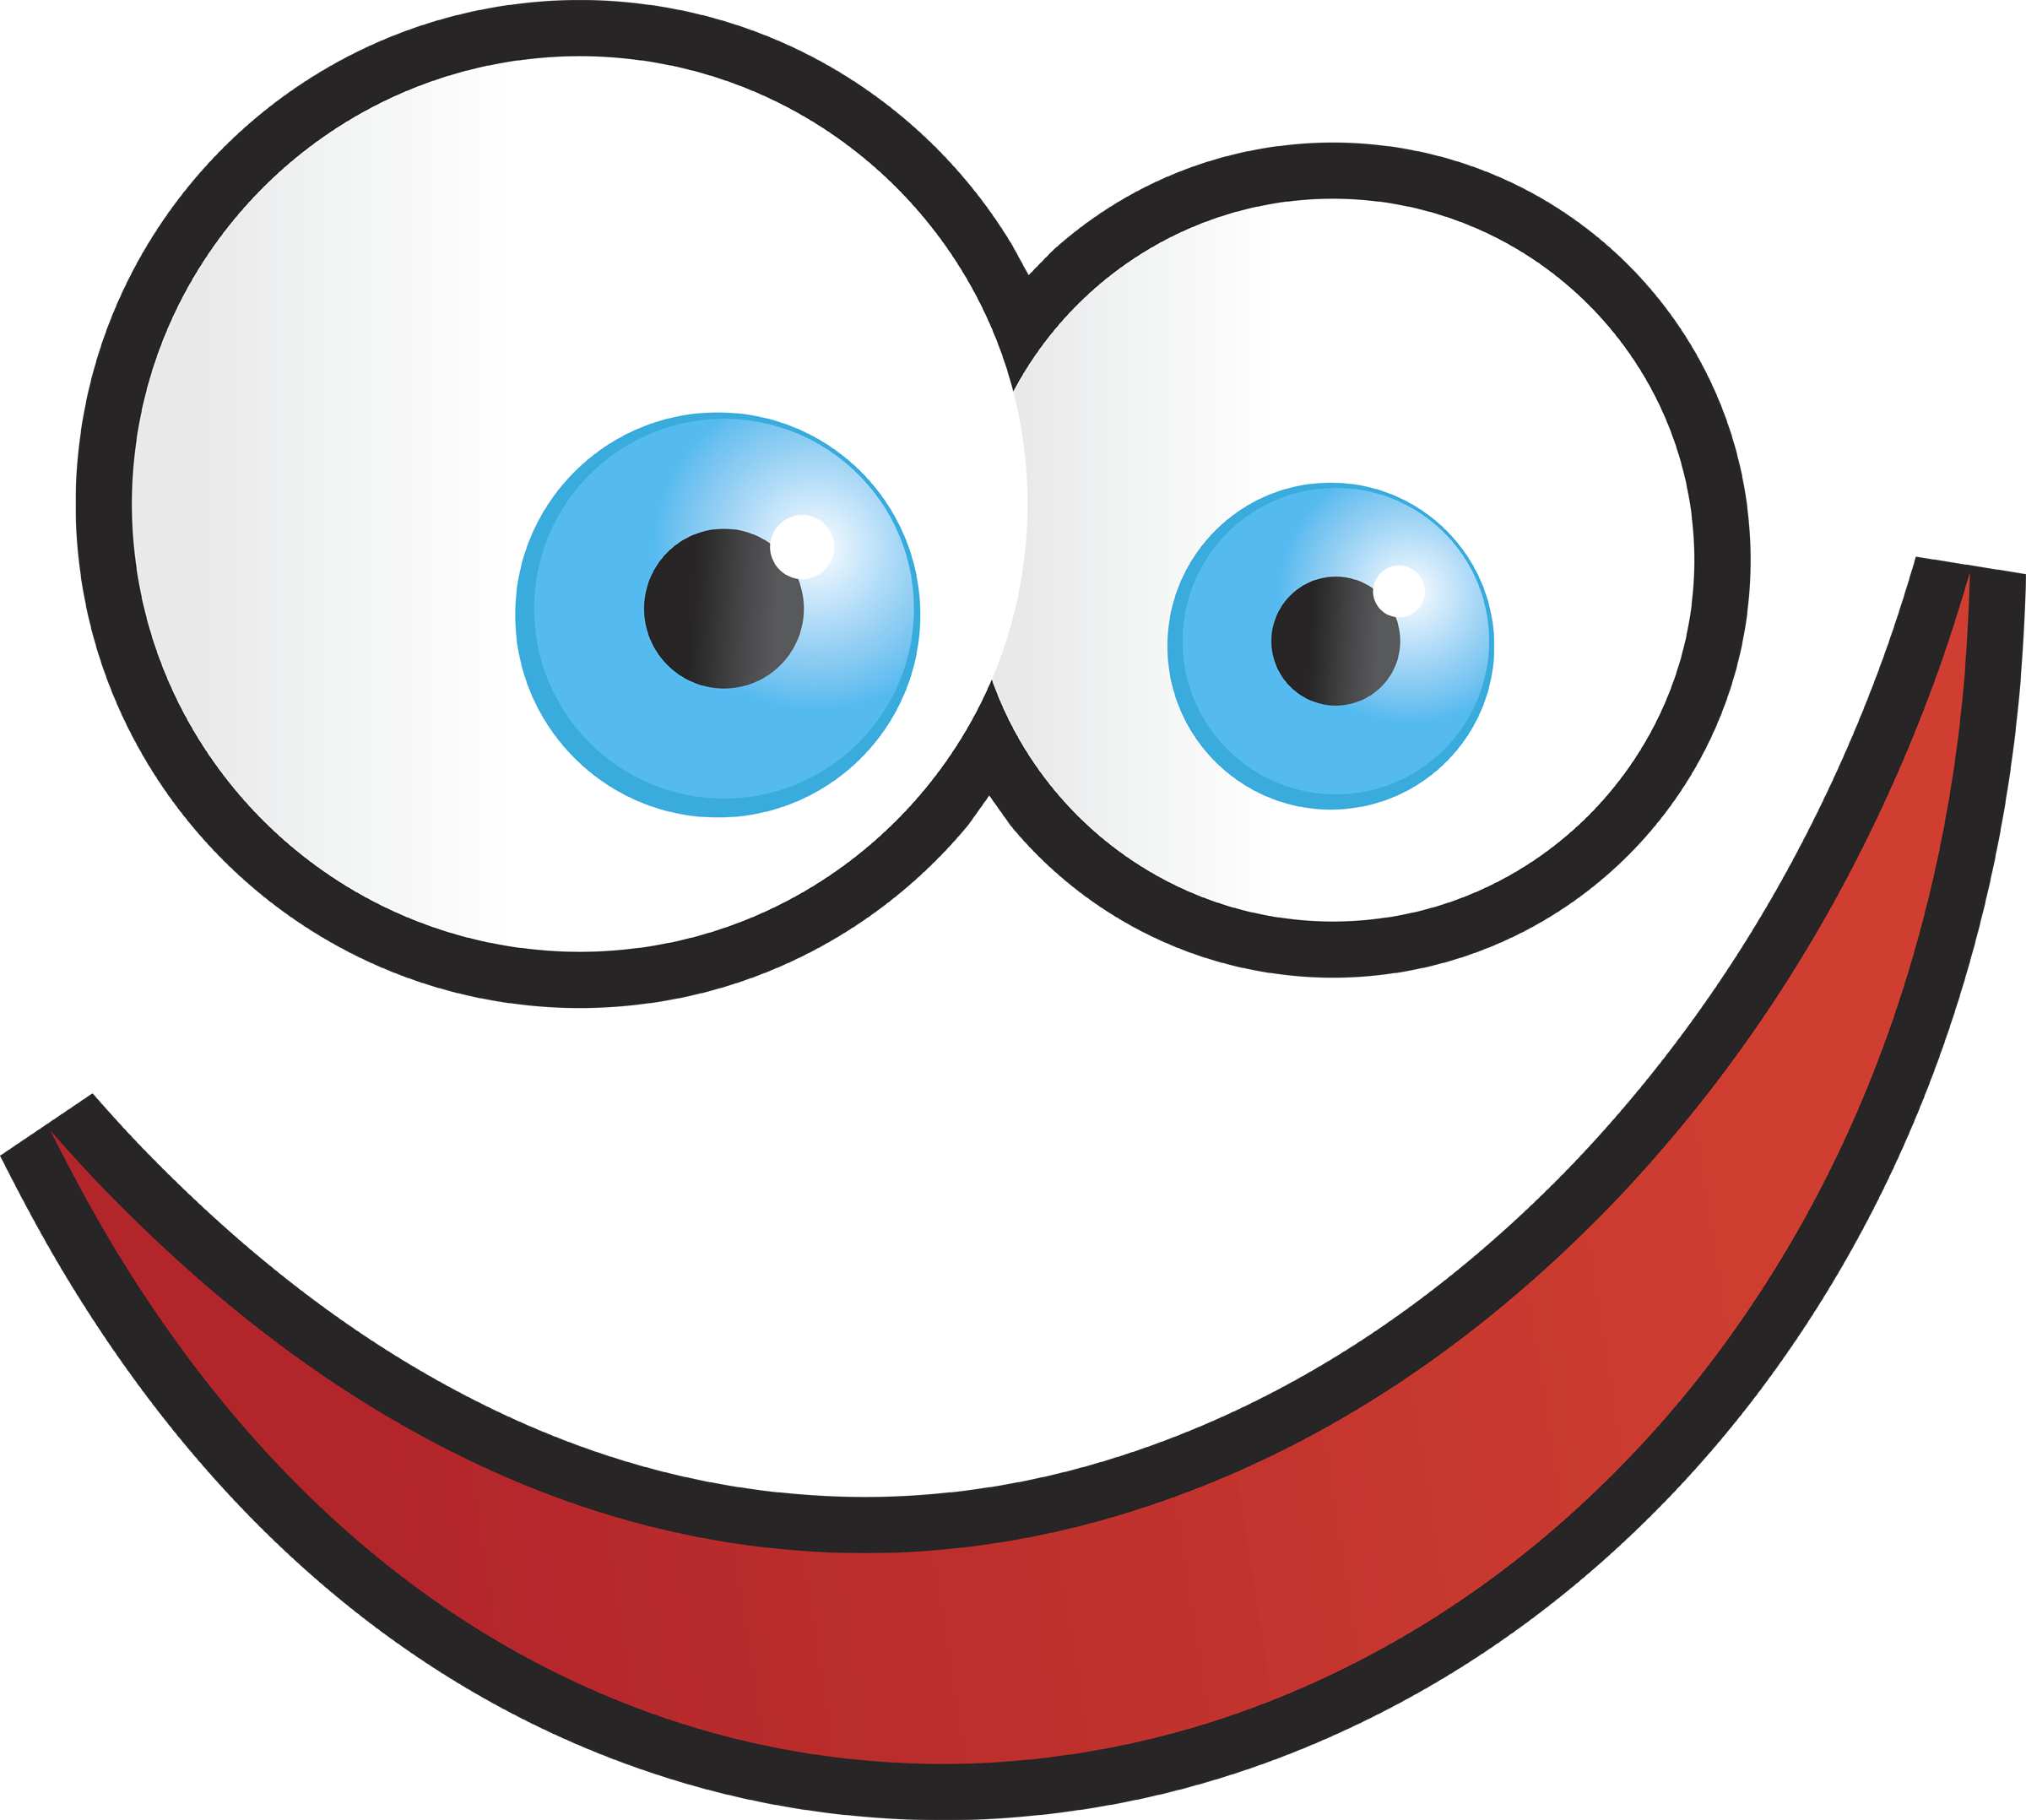 Free Cartoon Faces Png, Download Free Clip Art, Free Clip Art on.